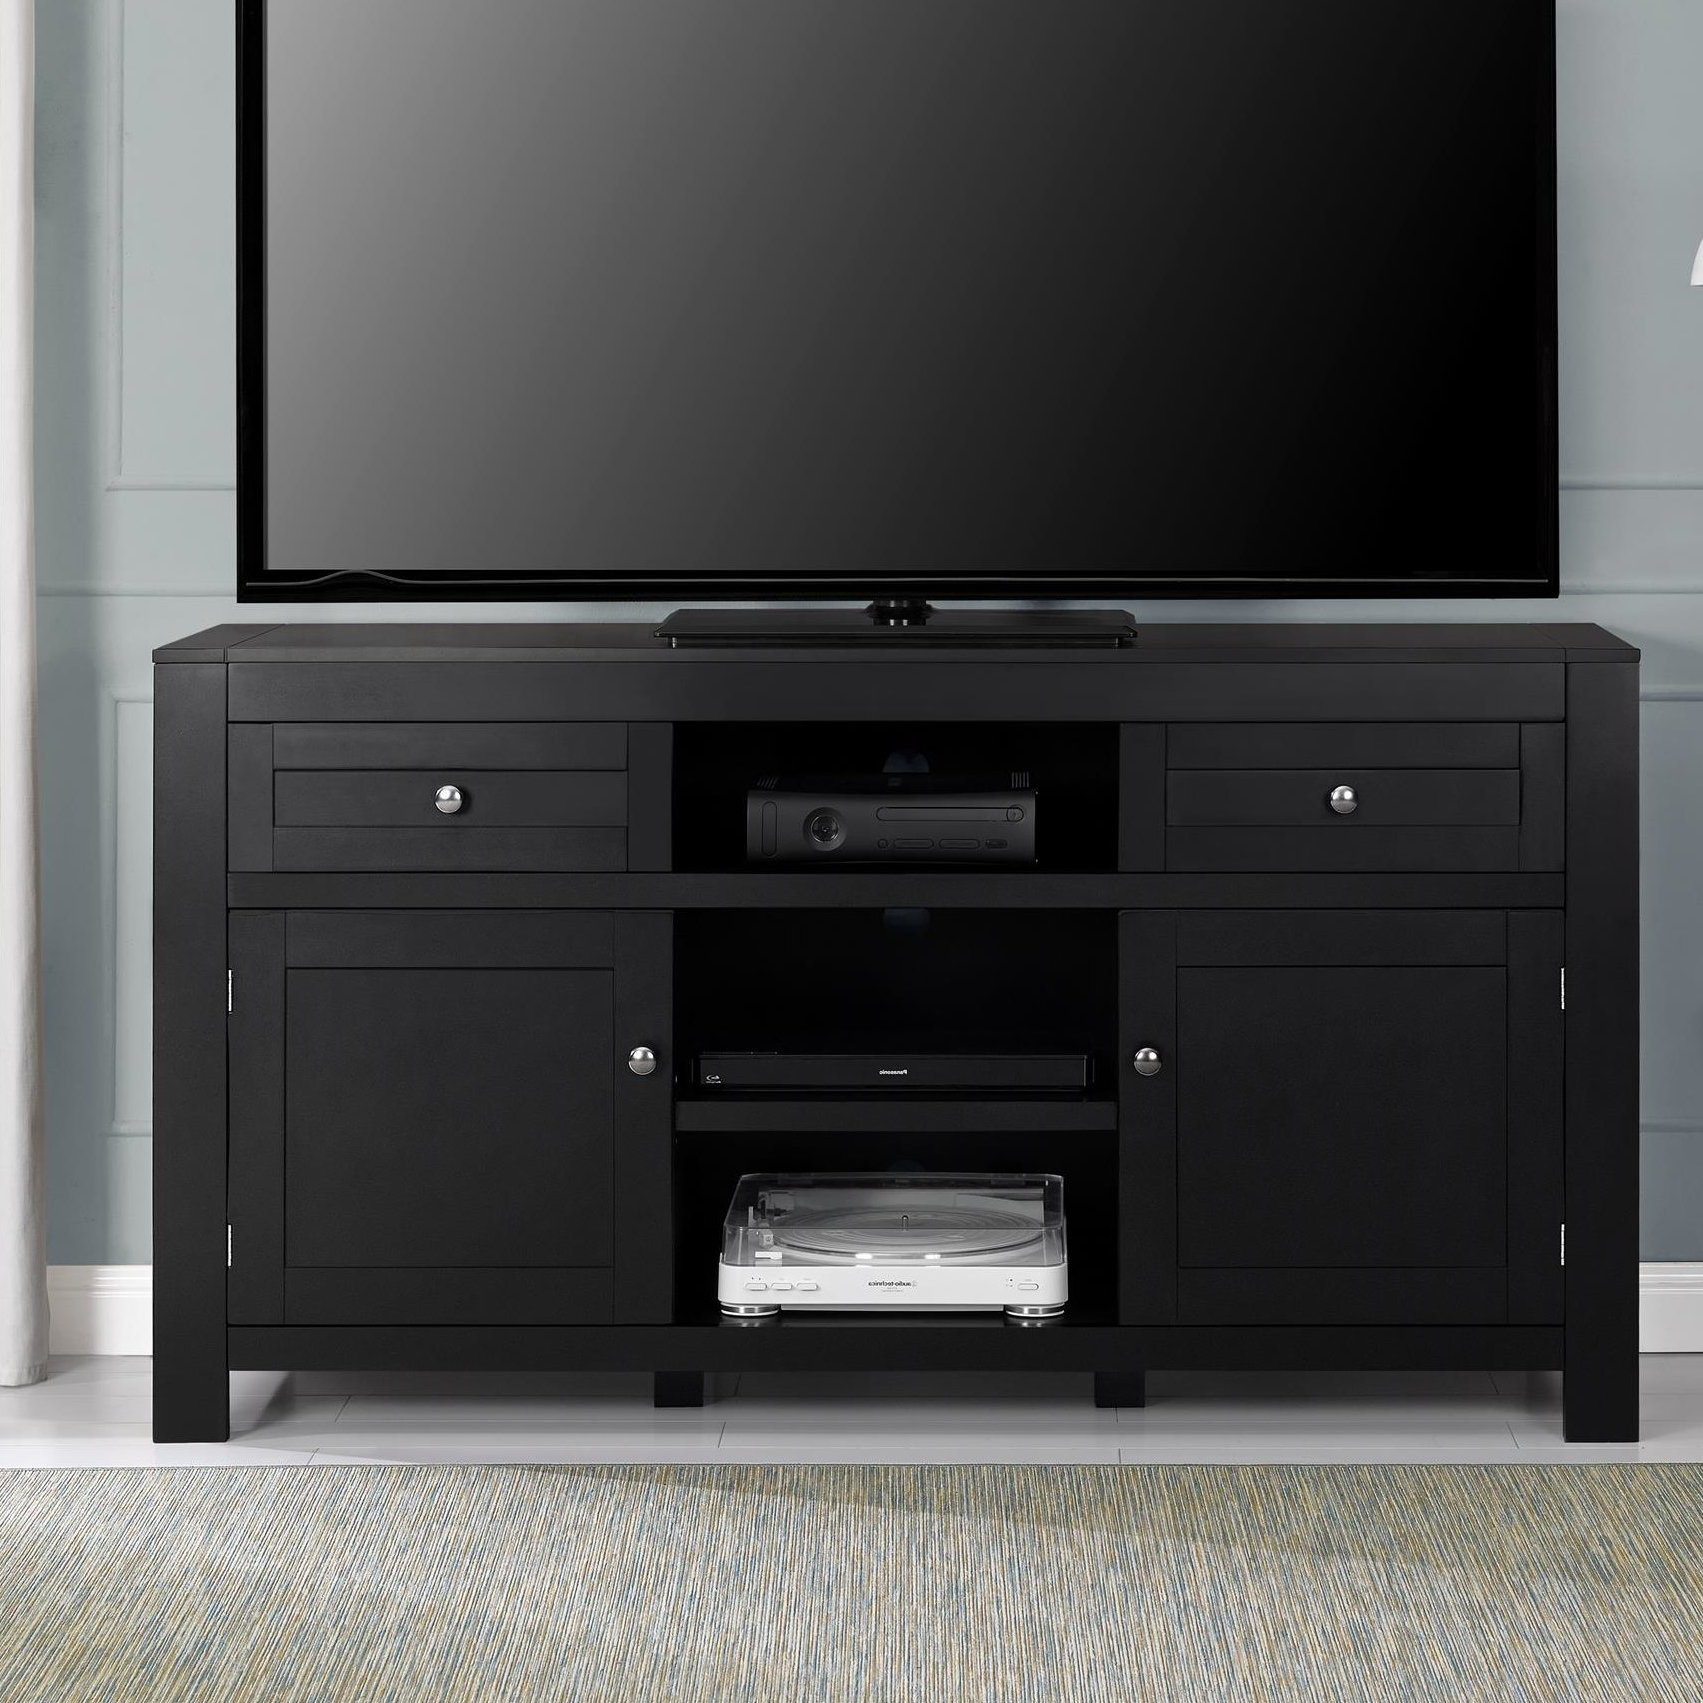 60 69 Inch Tv Stands You'll Love | Wayfair (View 6 of 20)